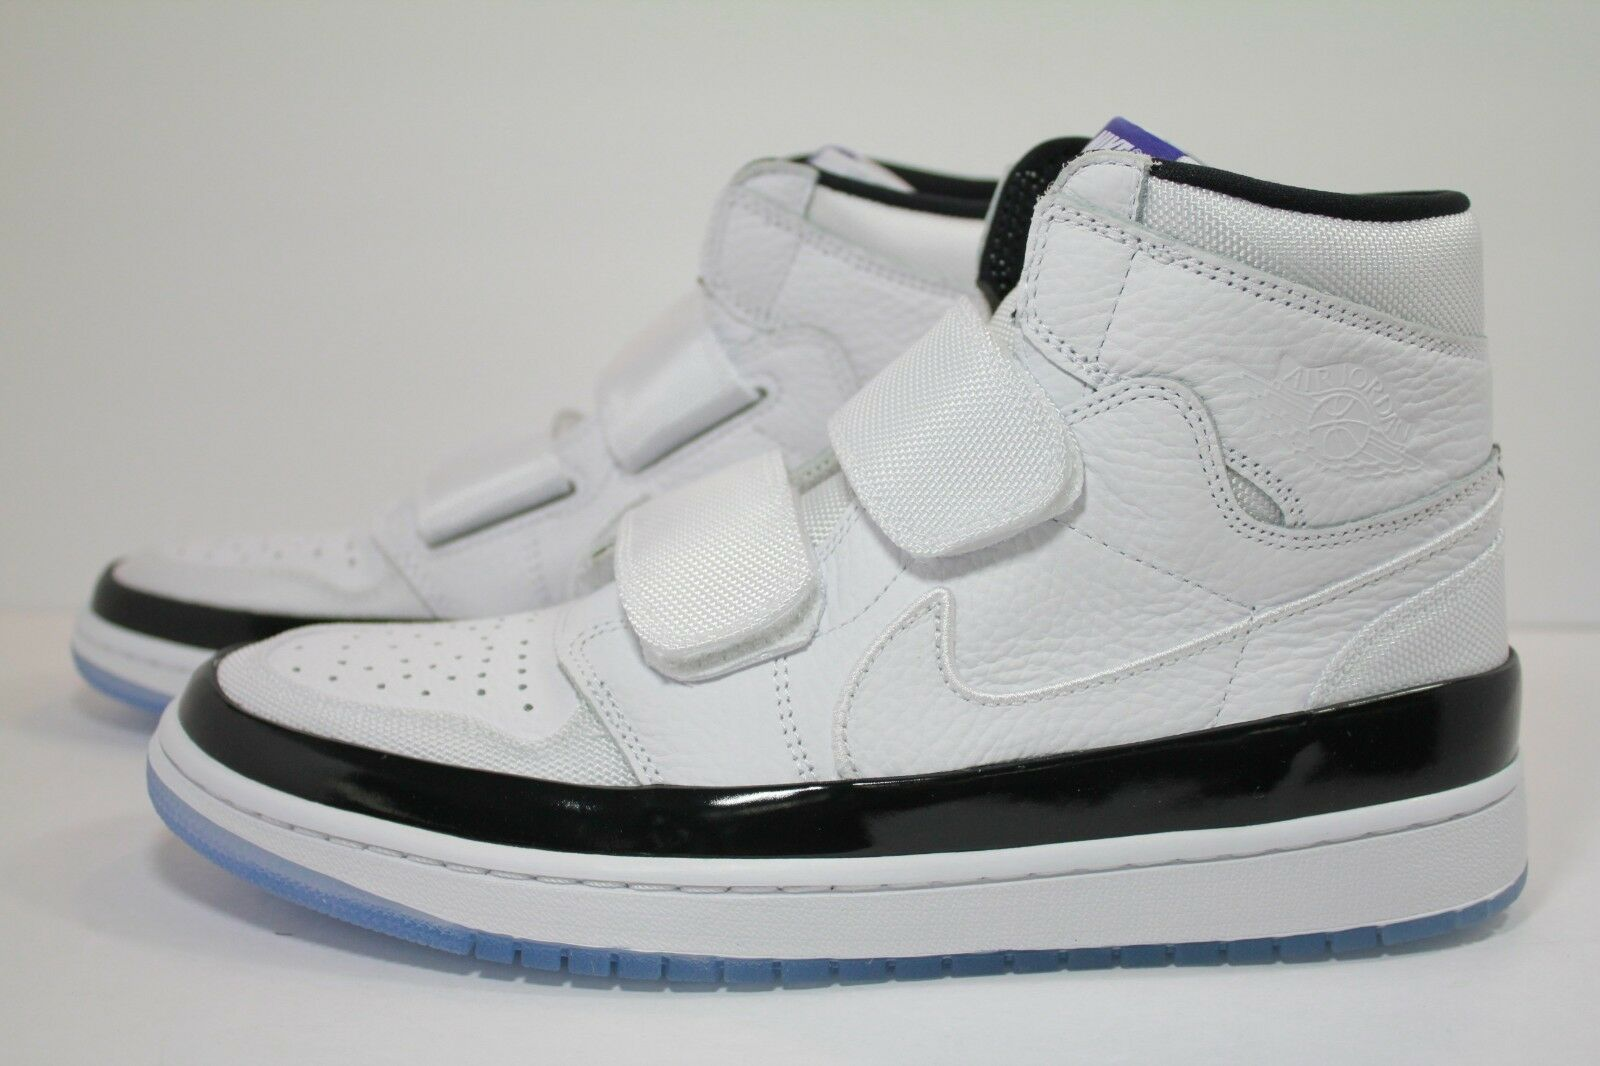 AIR JORDAN 1 RE HI DOUBLE STRP WHITE DARK CONCORD-BLACK AQ7924-107